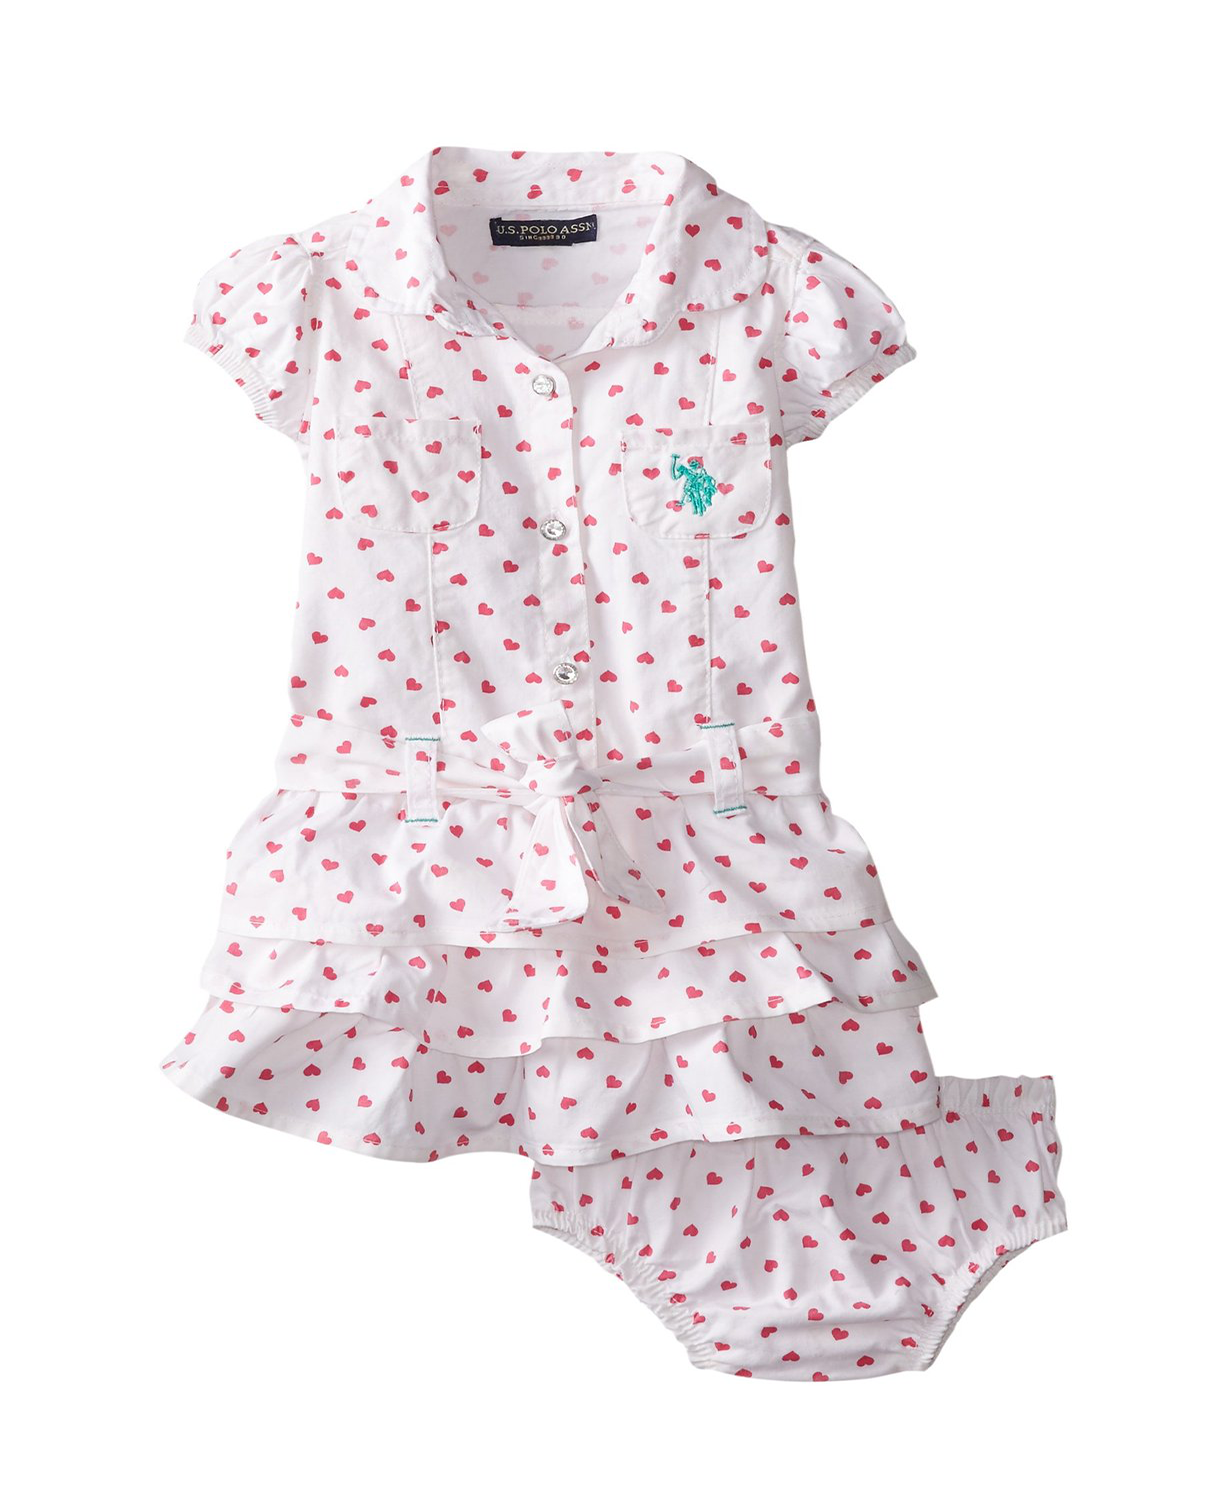 Find The Best Baby Girl Clothing For Your Little One